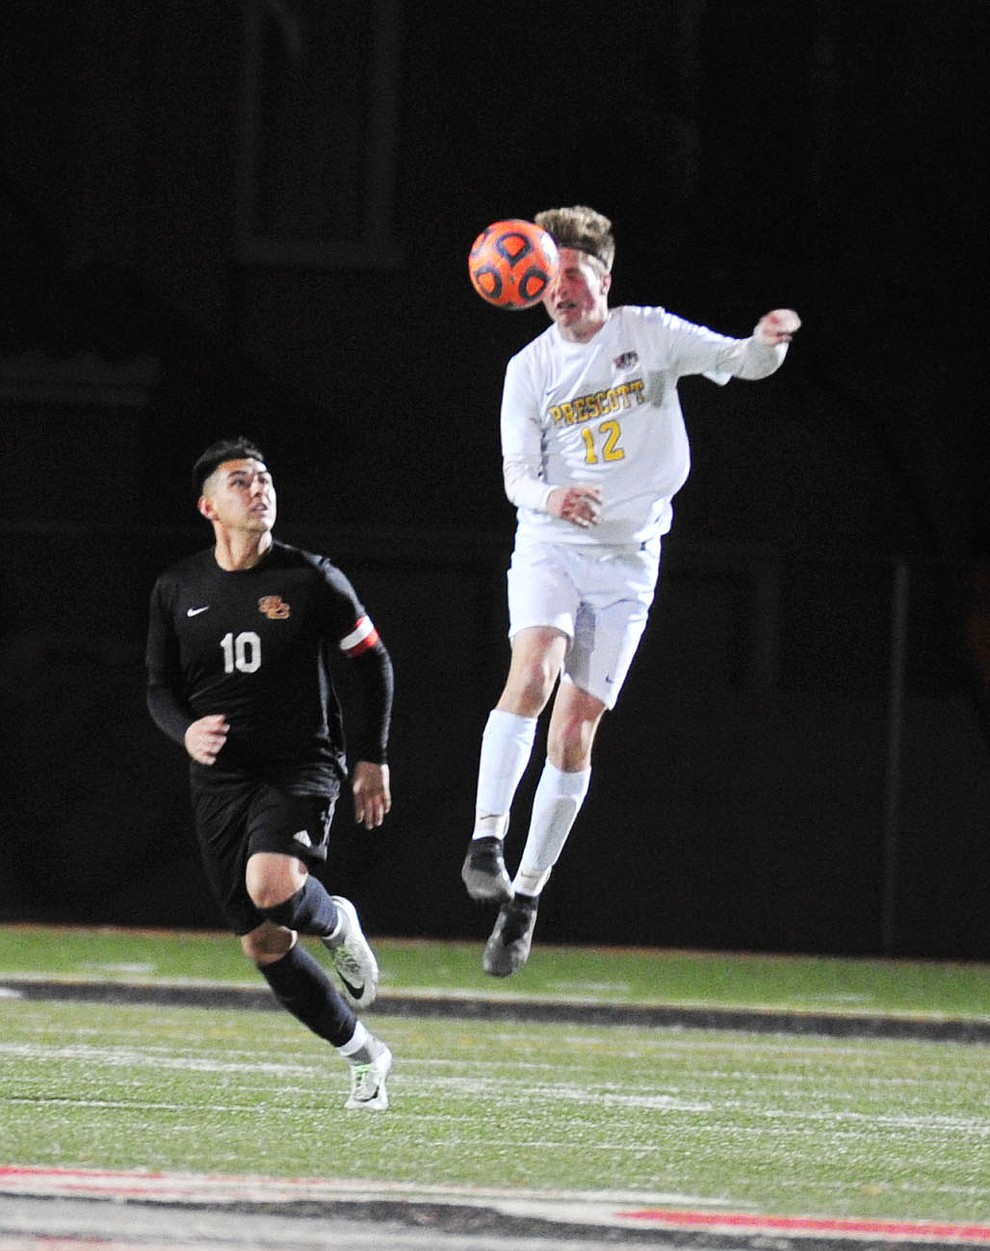 Prescott's Brayden Nelson heads the ball as the Badgers take on the Salpointe Catholic Lancers in the Arizona Interscholastic Association 4A State Soccer Championship Tuesday, February 19, 2019 at Williams Field High School in Gilbert. (Les Stukenberg/Courier).